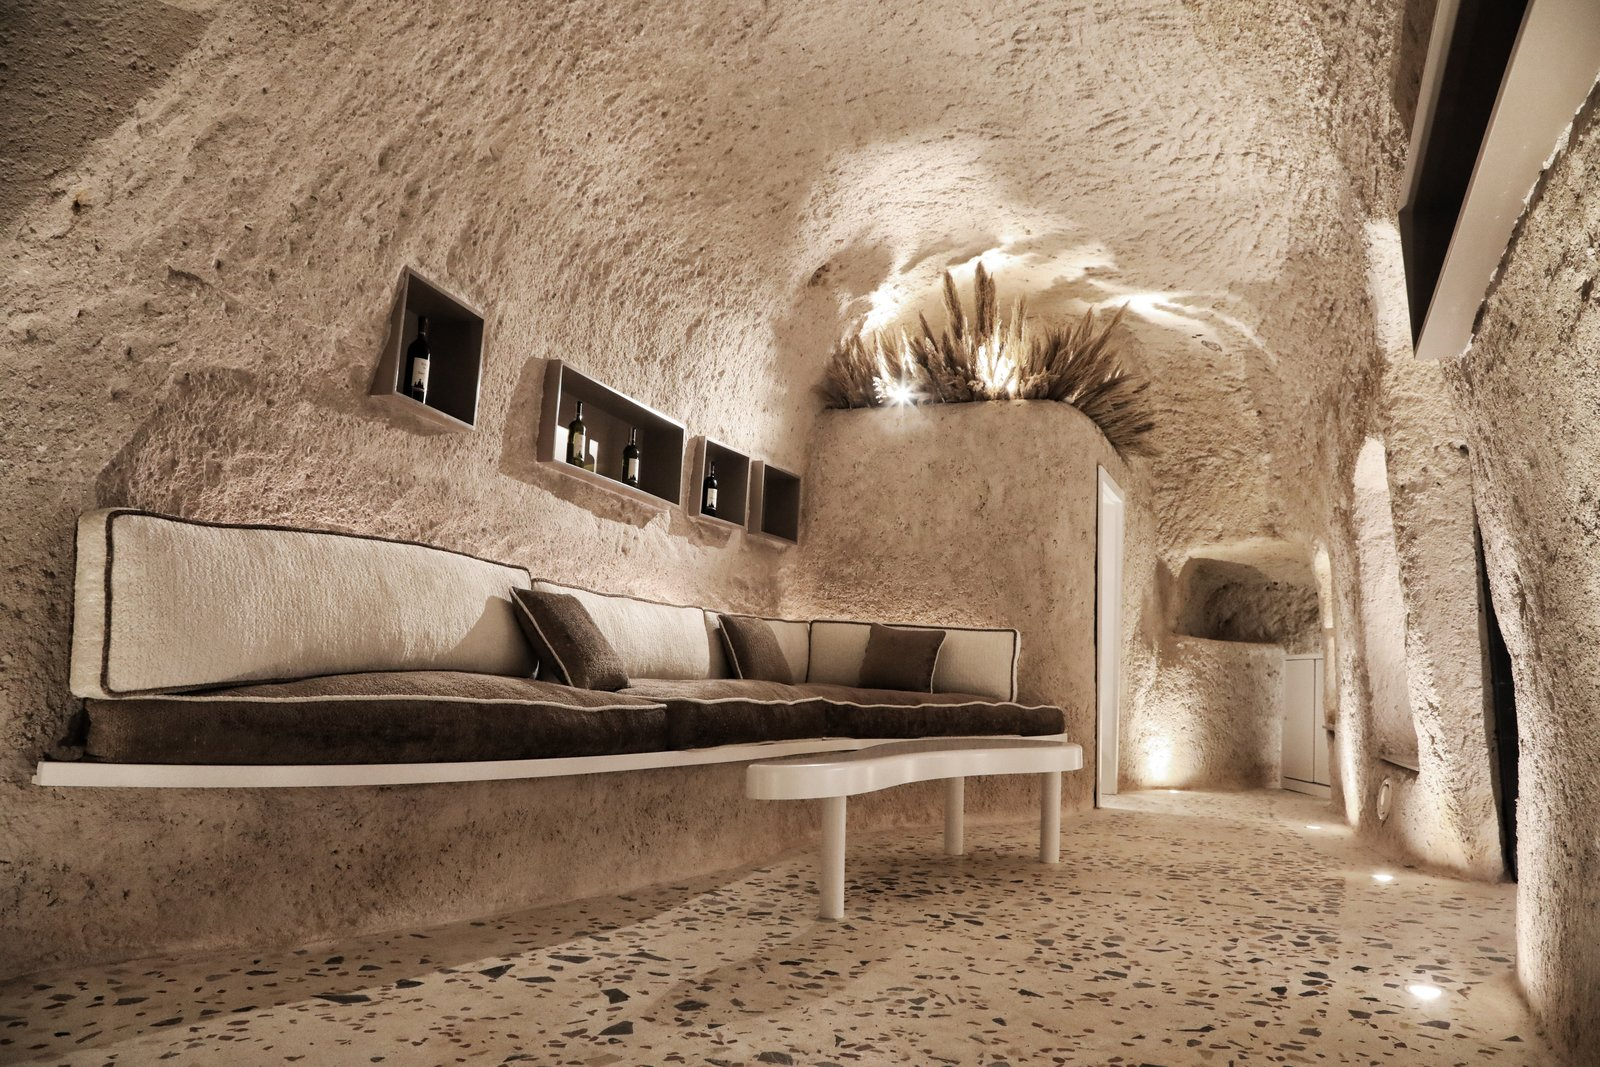 Living Room, Bench, Terrazzo Floor, Floor Lighting, and Ceiling Lighting  Photo 3 of 13 in A Primal Space Gets a Swanky, Modern Twist in This Turkish Cave Loft